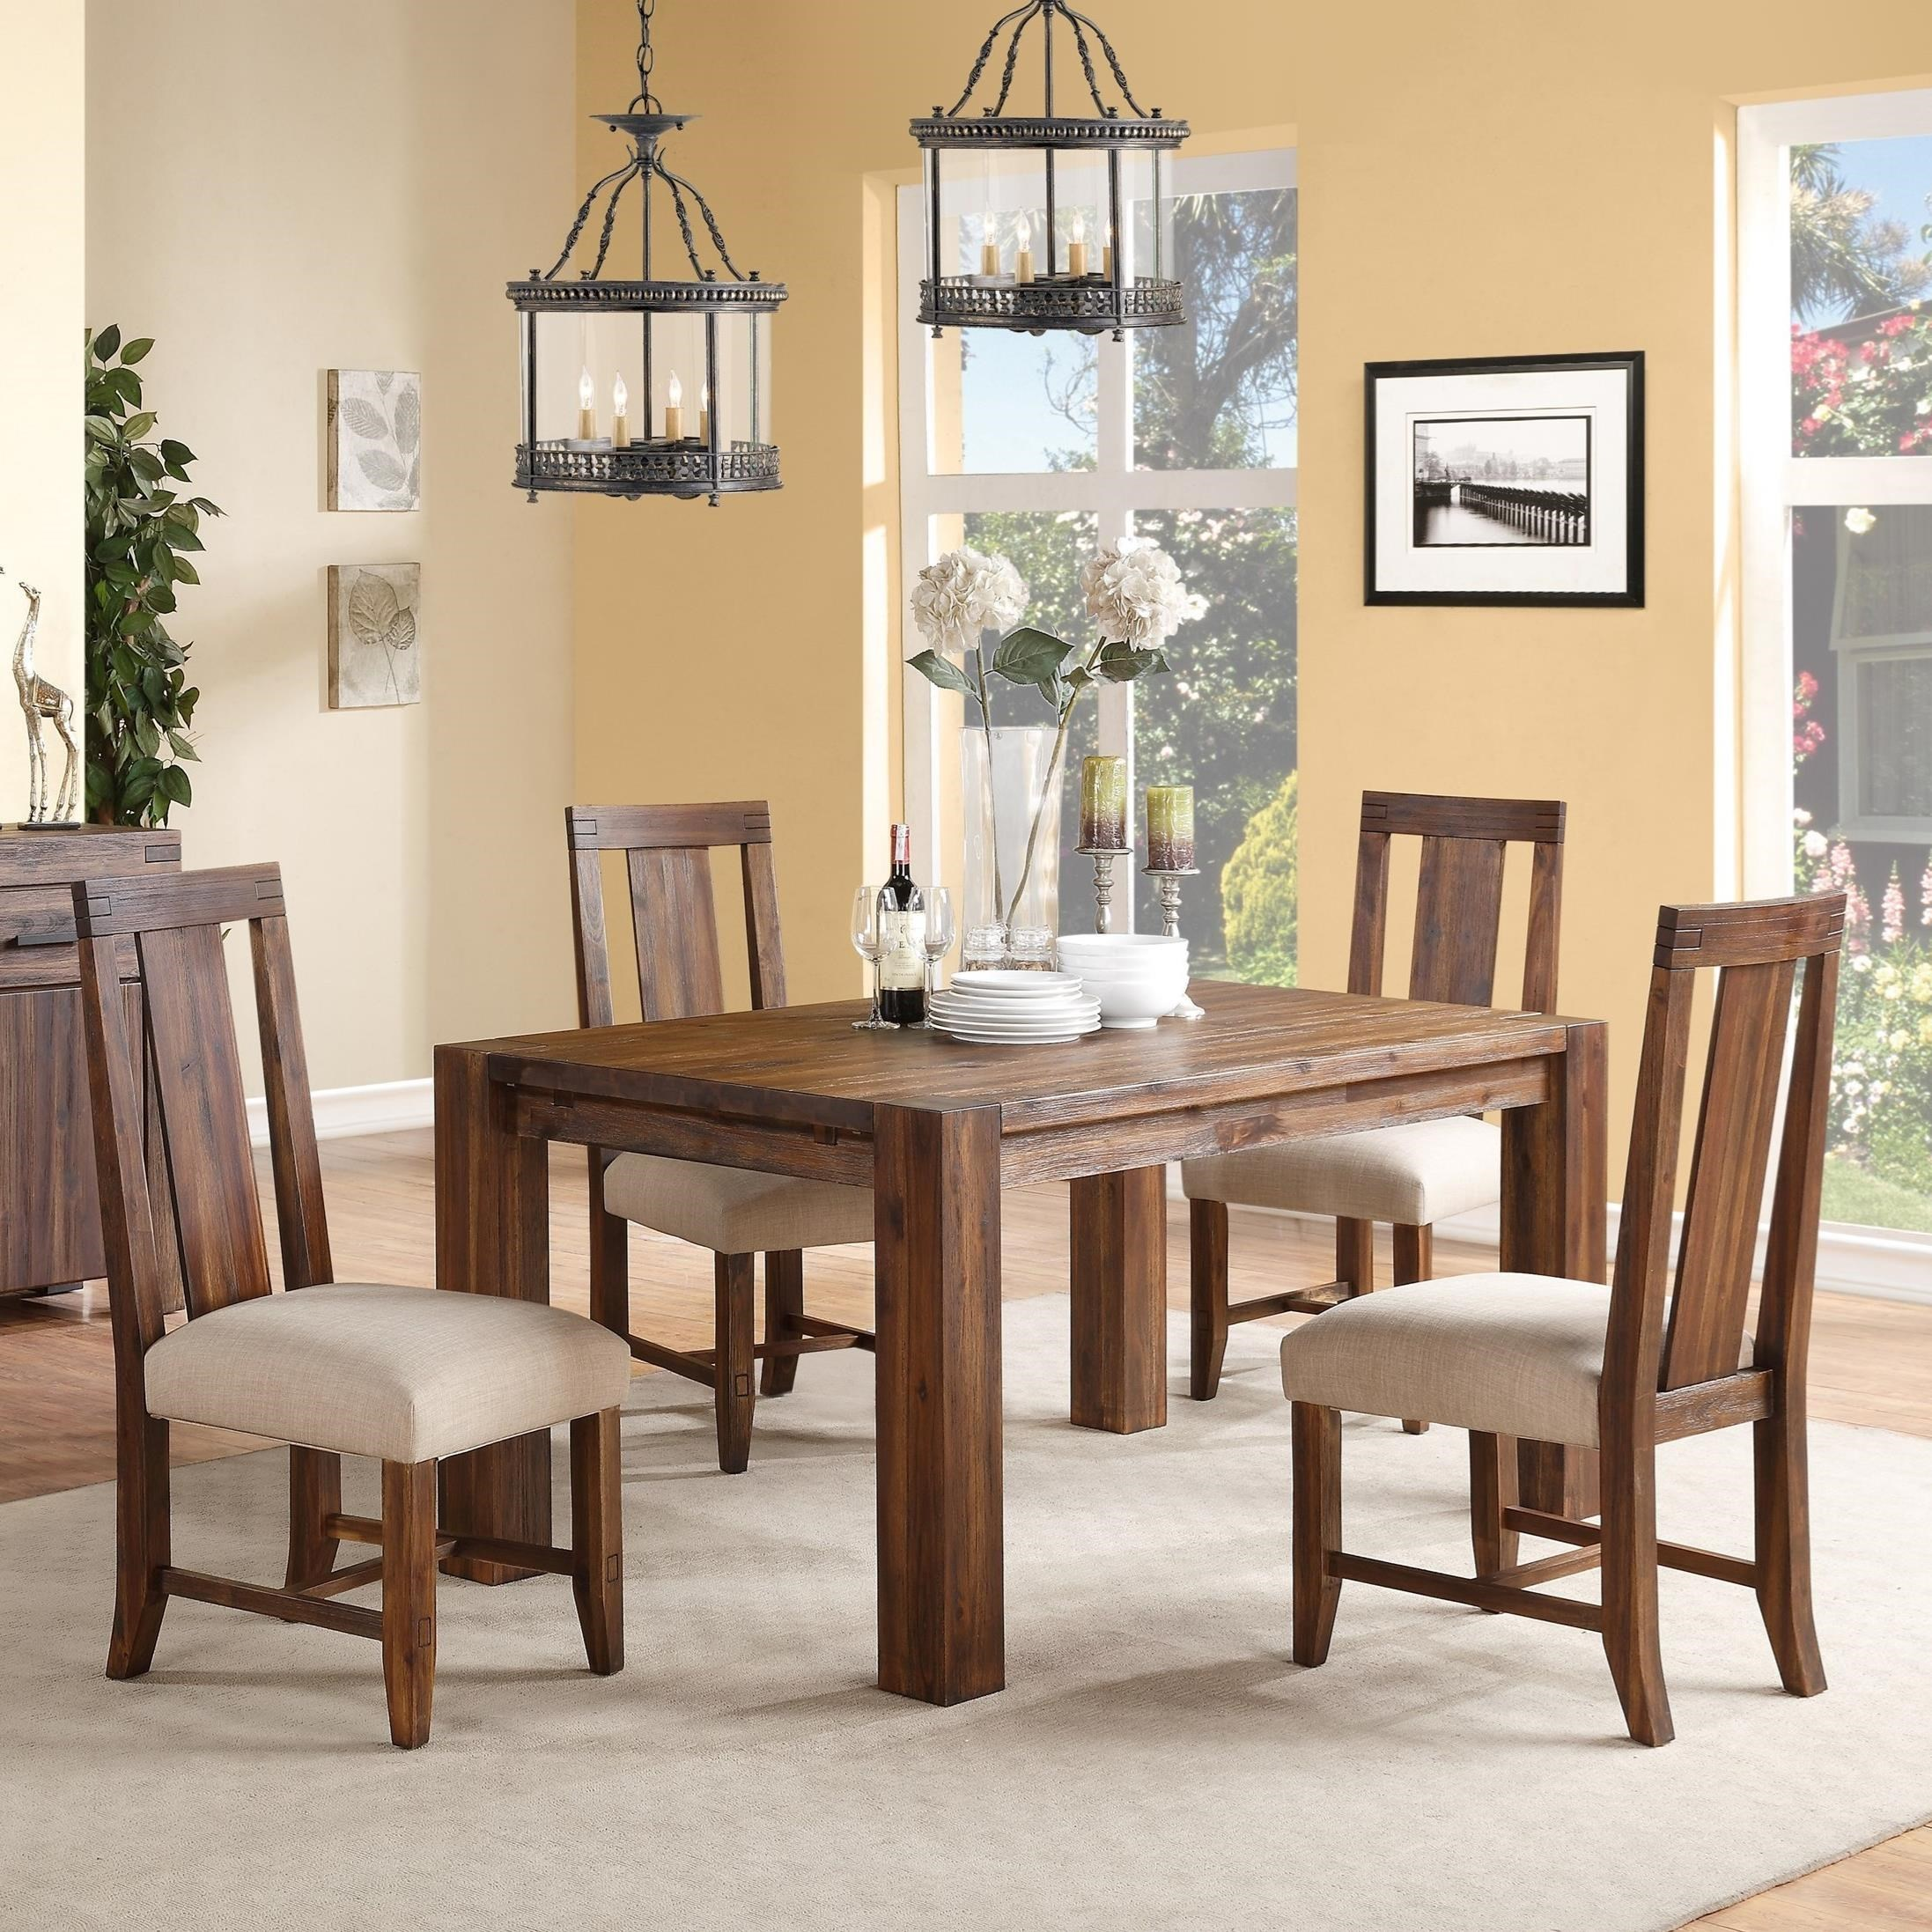 Modus International Meadow Dining 5 Piece Table U0026 Chair Set